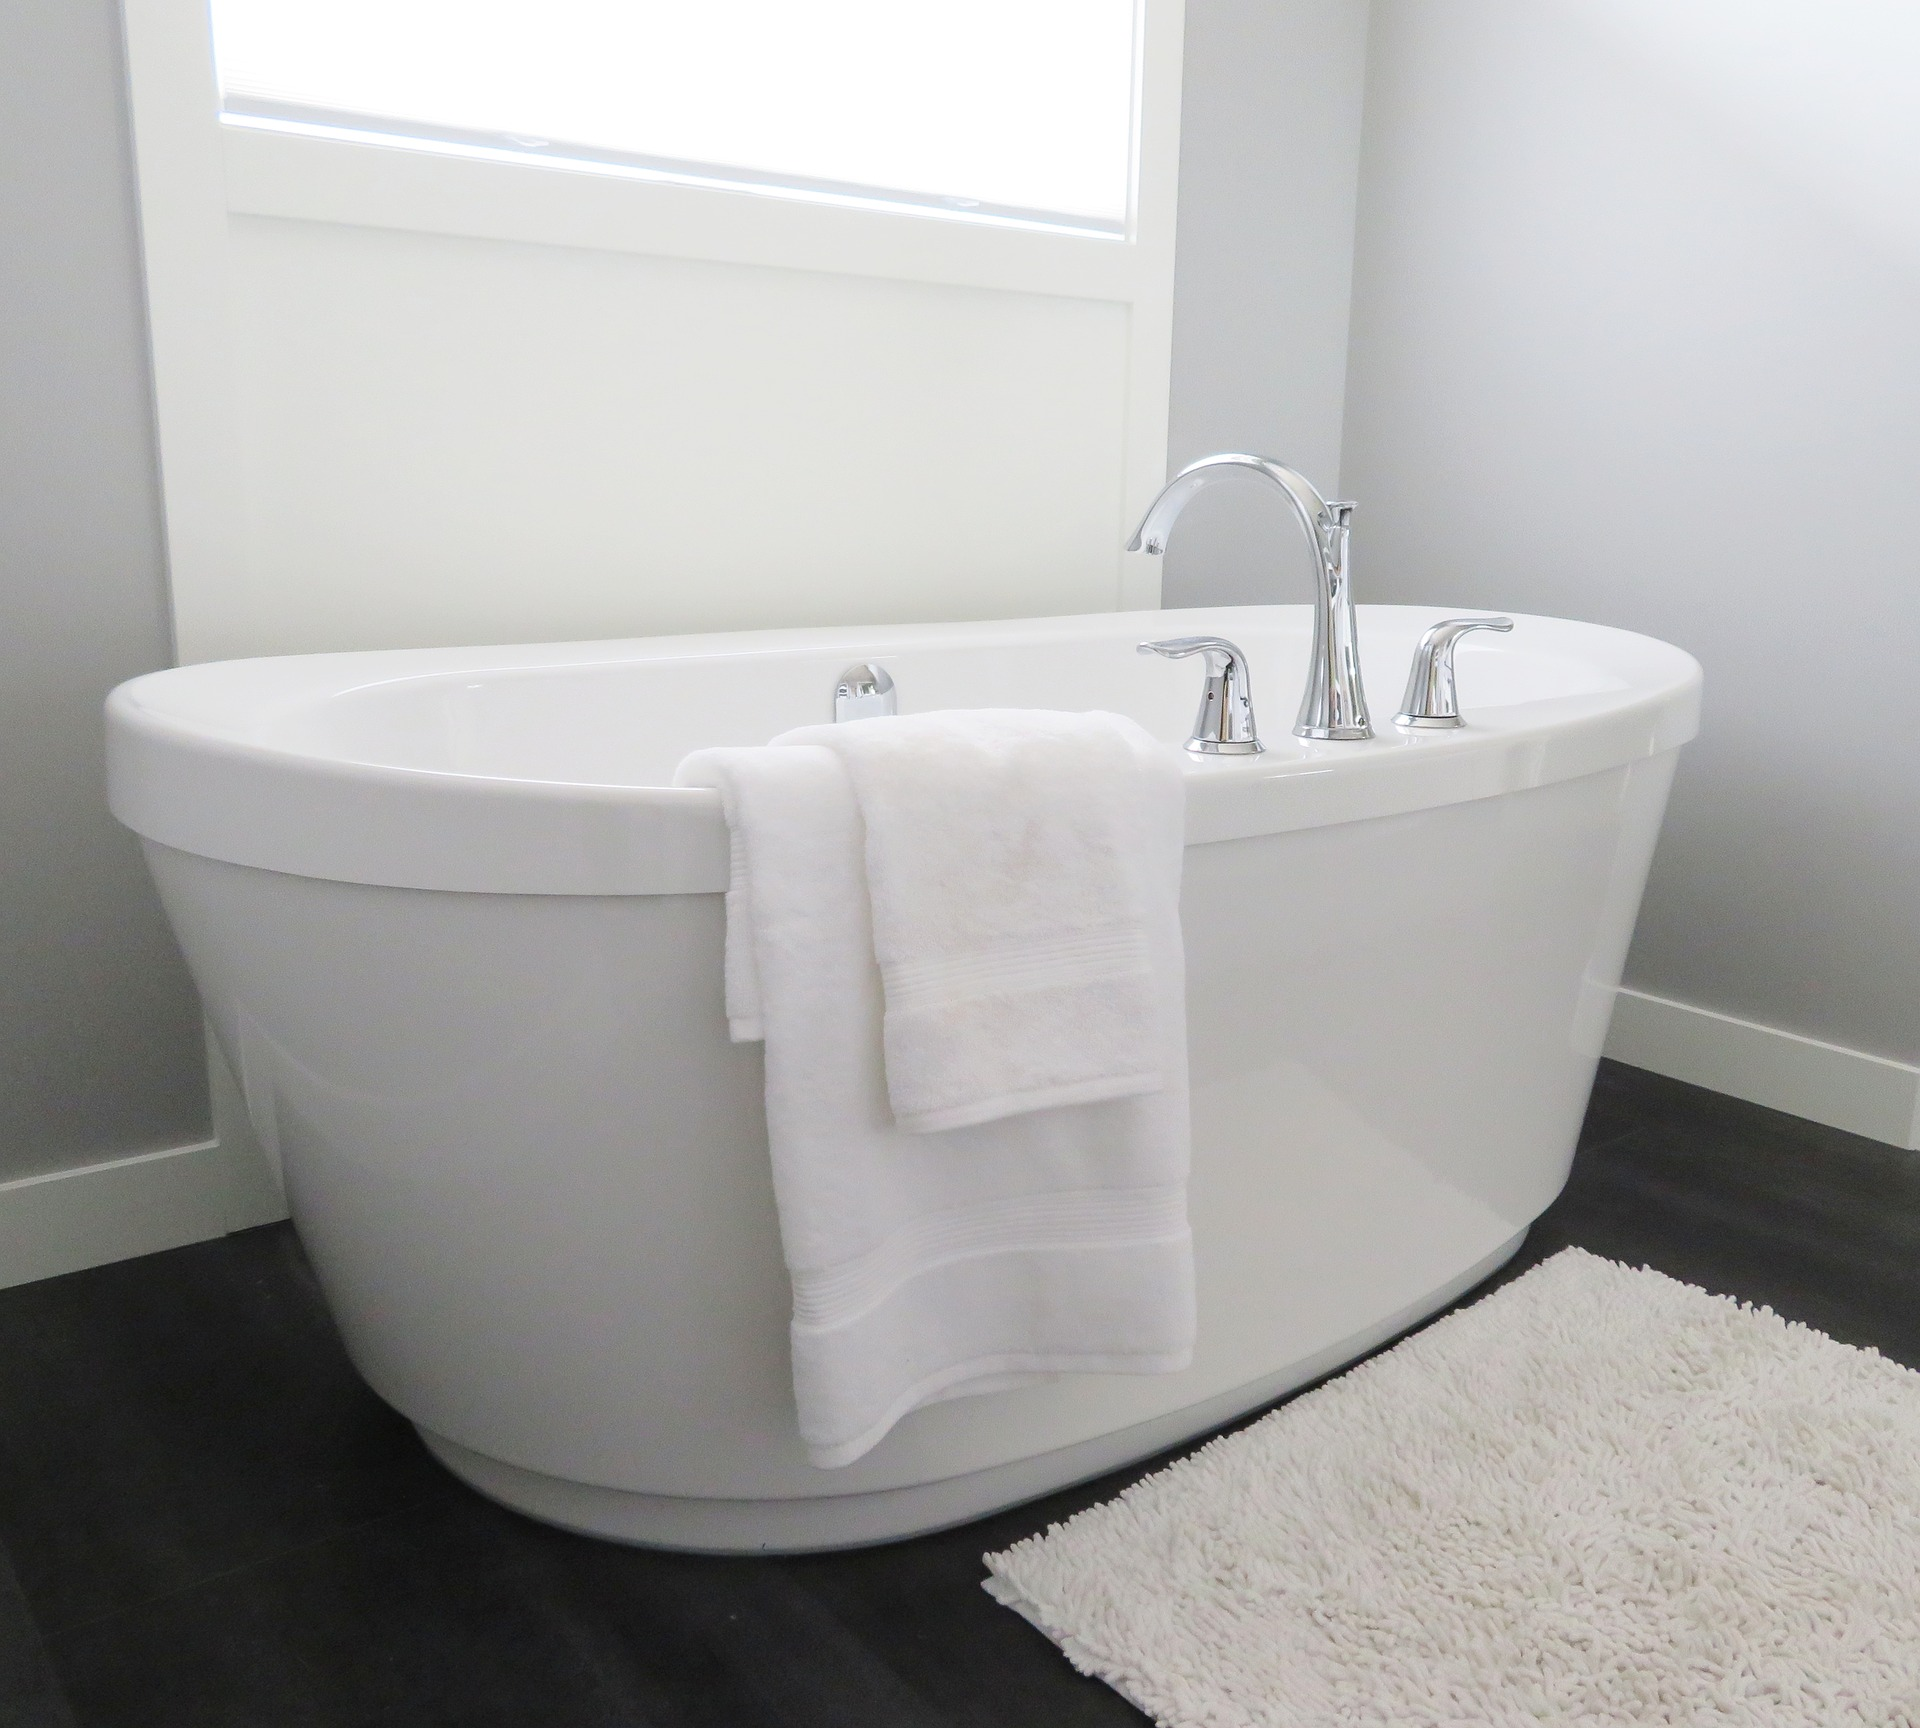 bathtub in a small bathroom